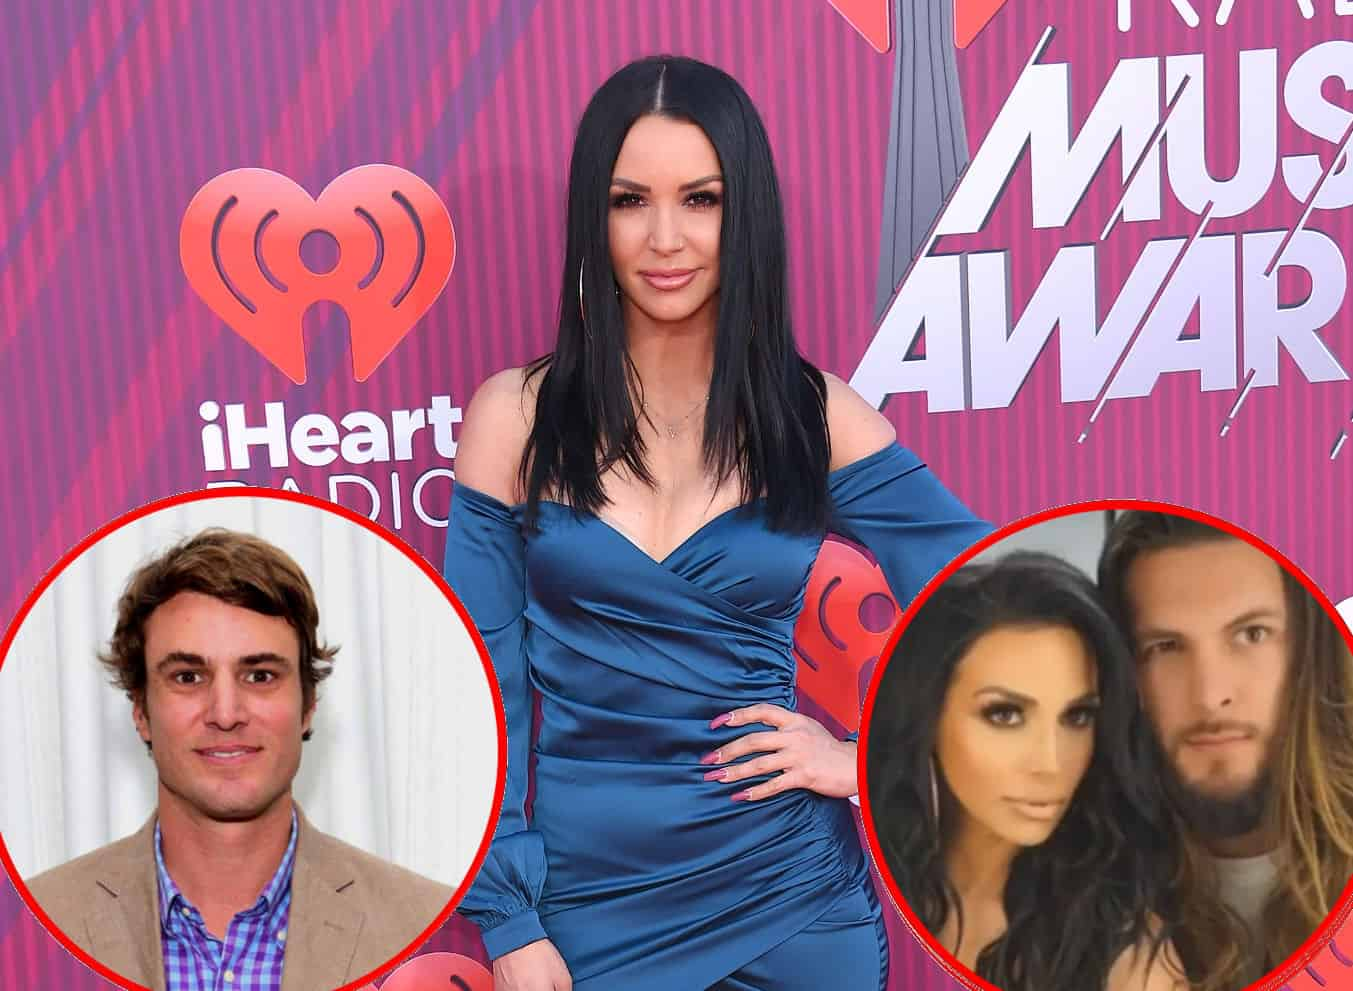 Vanderpump Rules' Scheana Reveals If She Hooked Up With Shep Rose and Which Bravo Star She Wanted to Hook Up With, Plus What She Bought Boyfriend Brock Davies